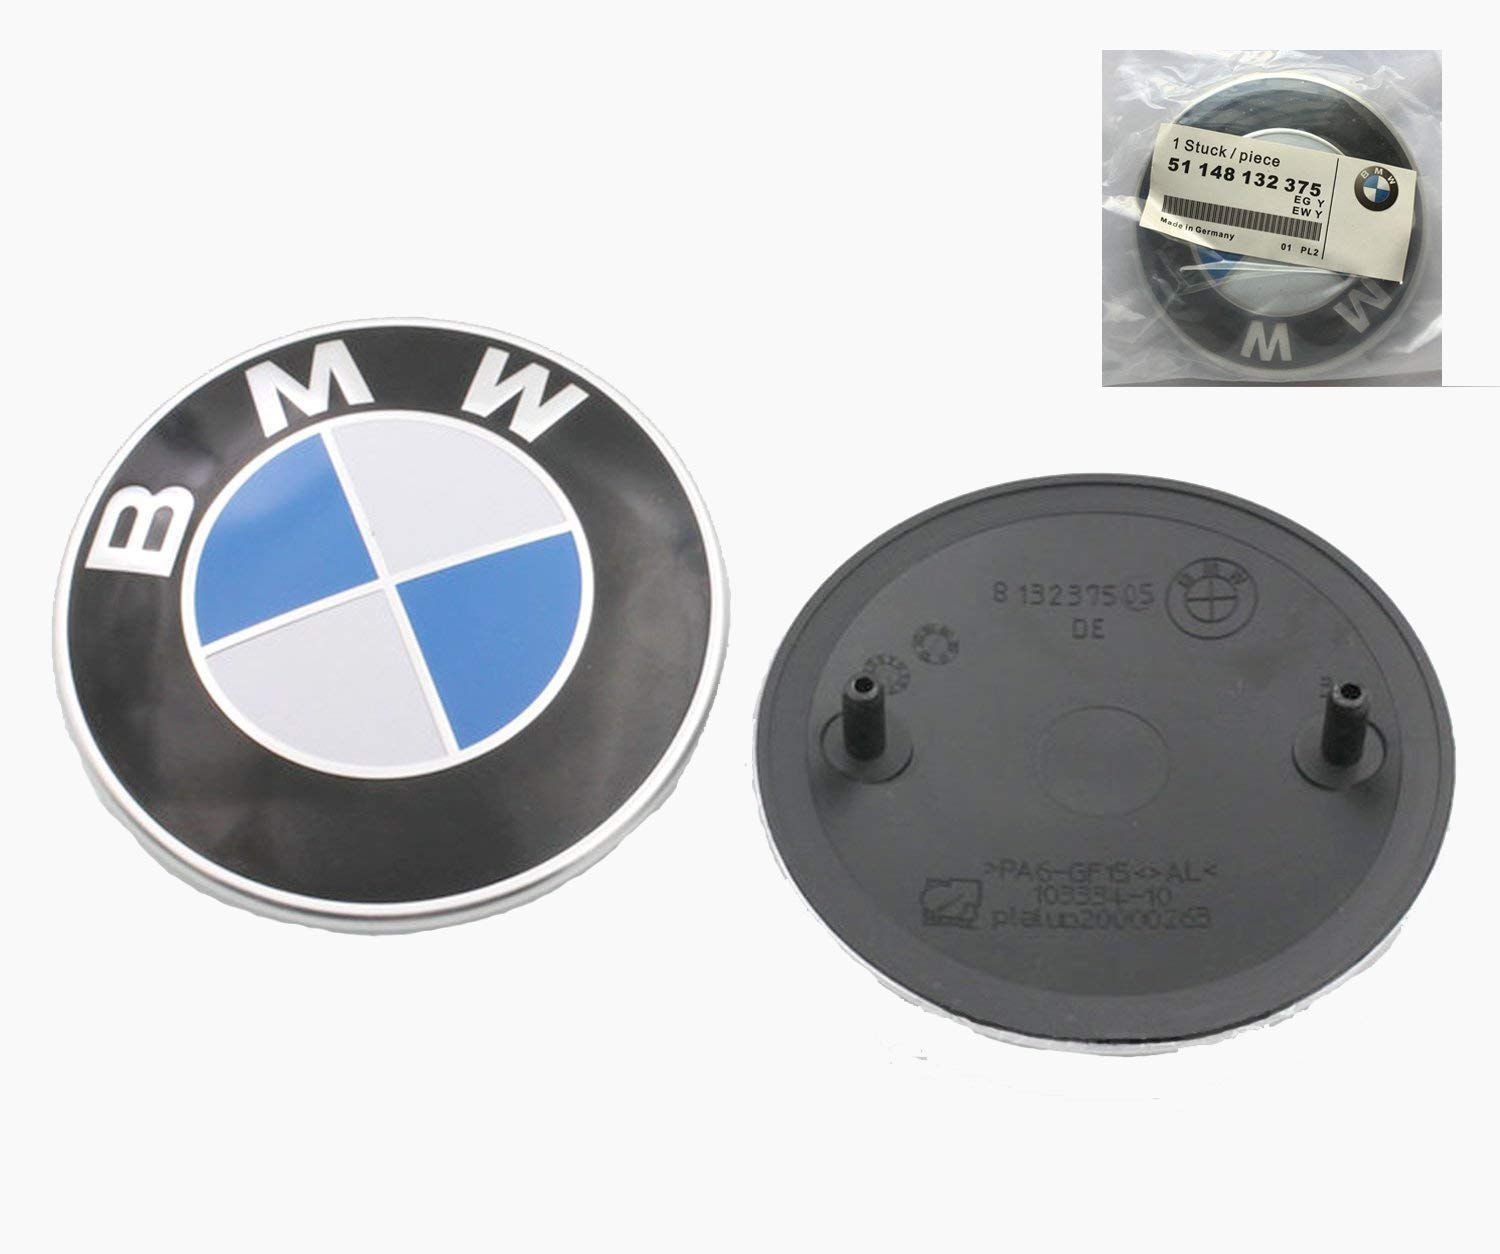 82mm BMW 2 pin Emblem Logo Replacement for Hood/Trunk for All Models BMW E30 E36 E46 E34 E39 E60 E65 E38 X3 X5 X6 3 4 5 6 7 8 (1pc) Haocc Loud